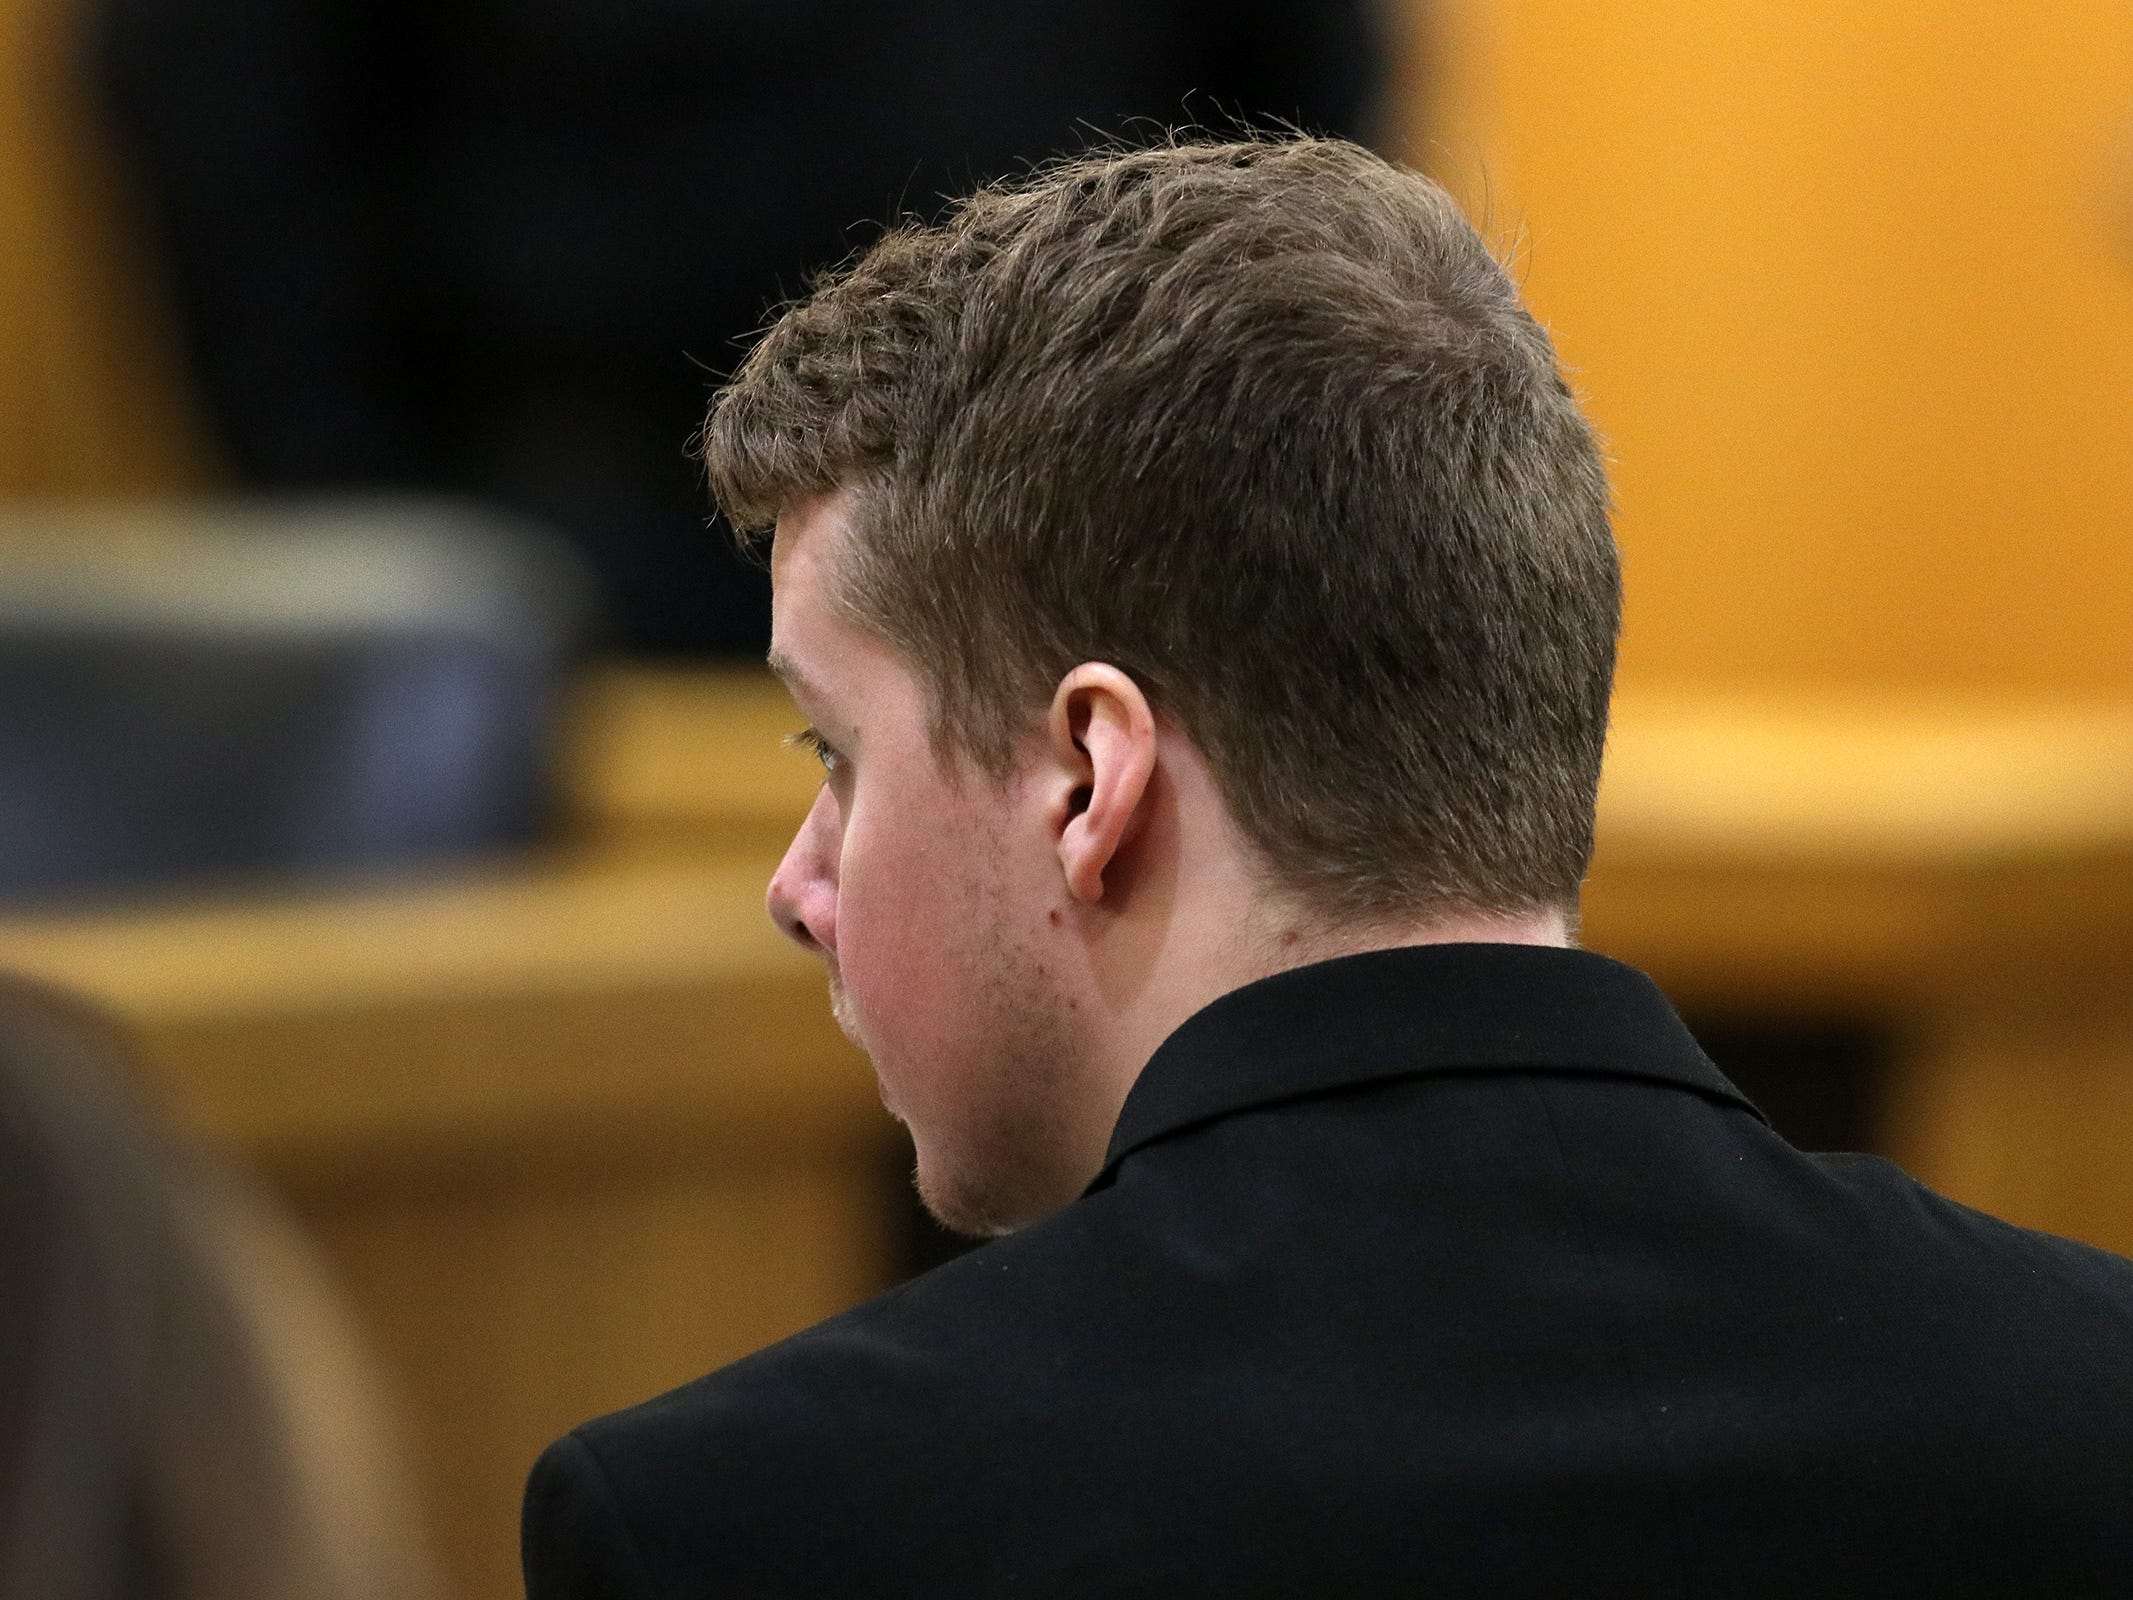 Liam McAtasney, who is charged with the murder of former high school classmate, Sarah Stern, speaks to his lawyer, Carlos Diaz-Cobo,  before jurors rewatch the video evidence they requested during their deliberations before Superior Court Judge Richard W. English at the Monmouth County Courthouse in Freehold, NJ Tuesday, February 26, 2019.